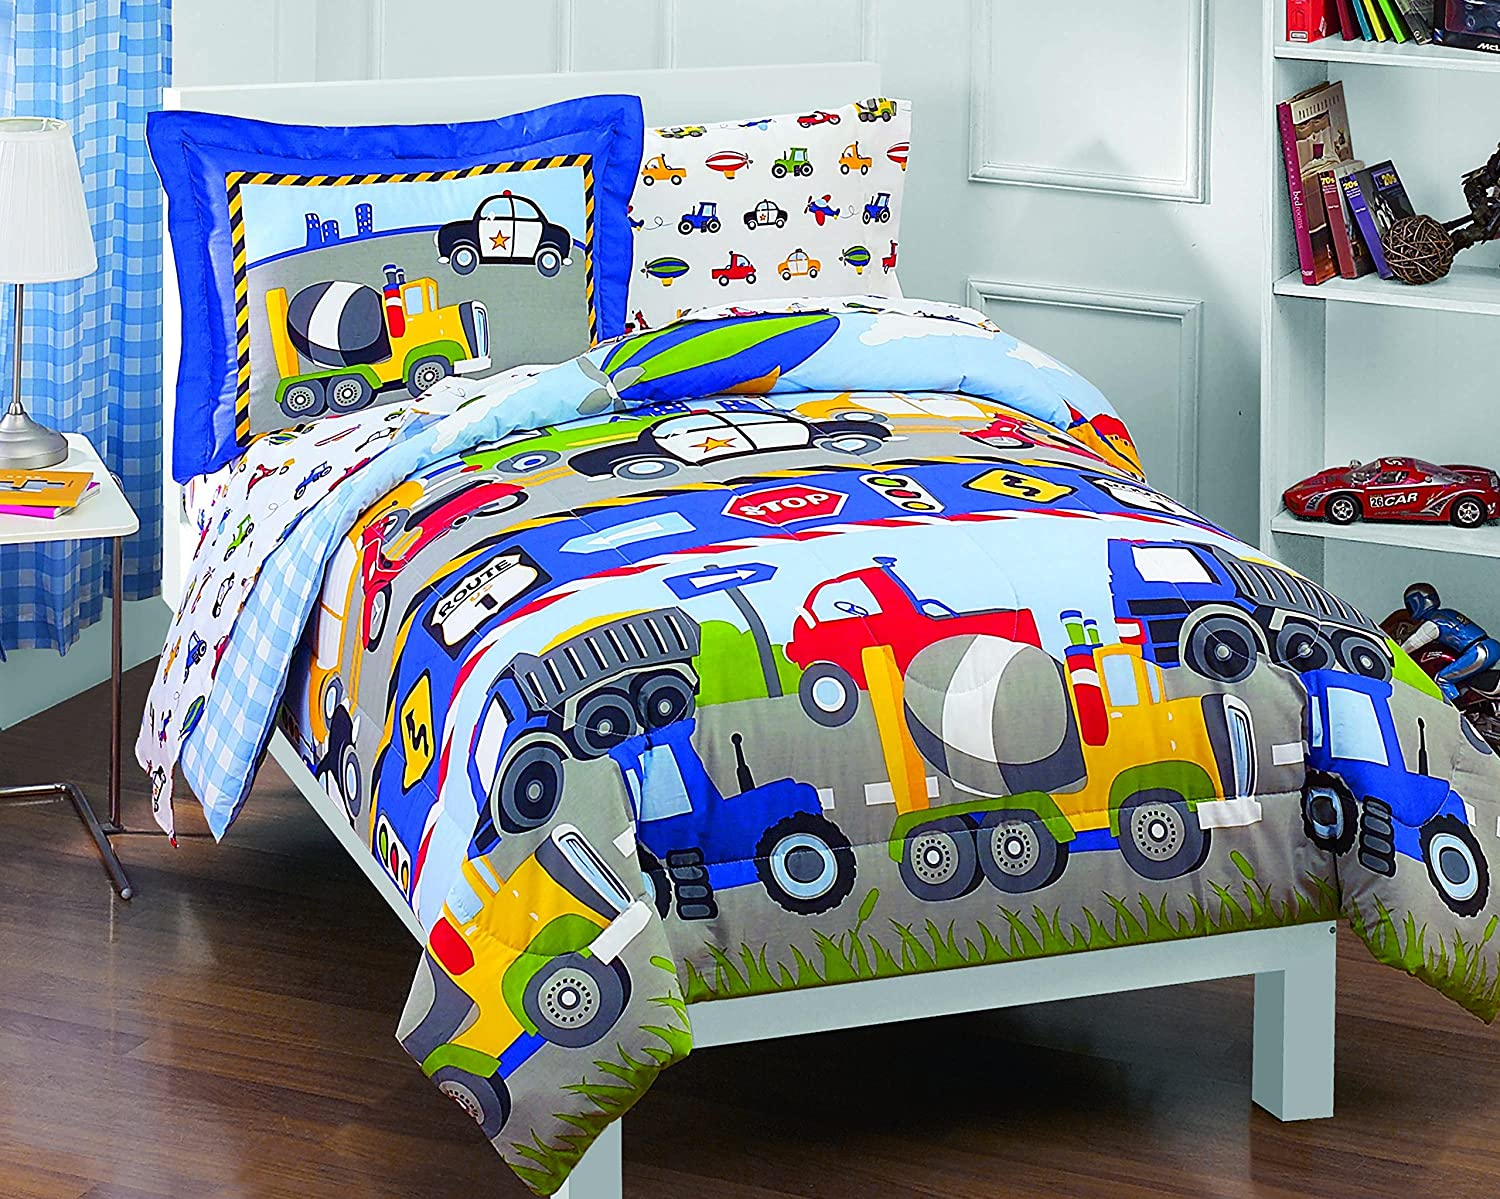 Amazoncom Dream Factory Trucks Tractors Cars Boys Piece - Boys sports bedding sets twin